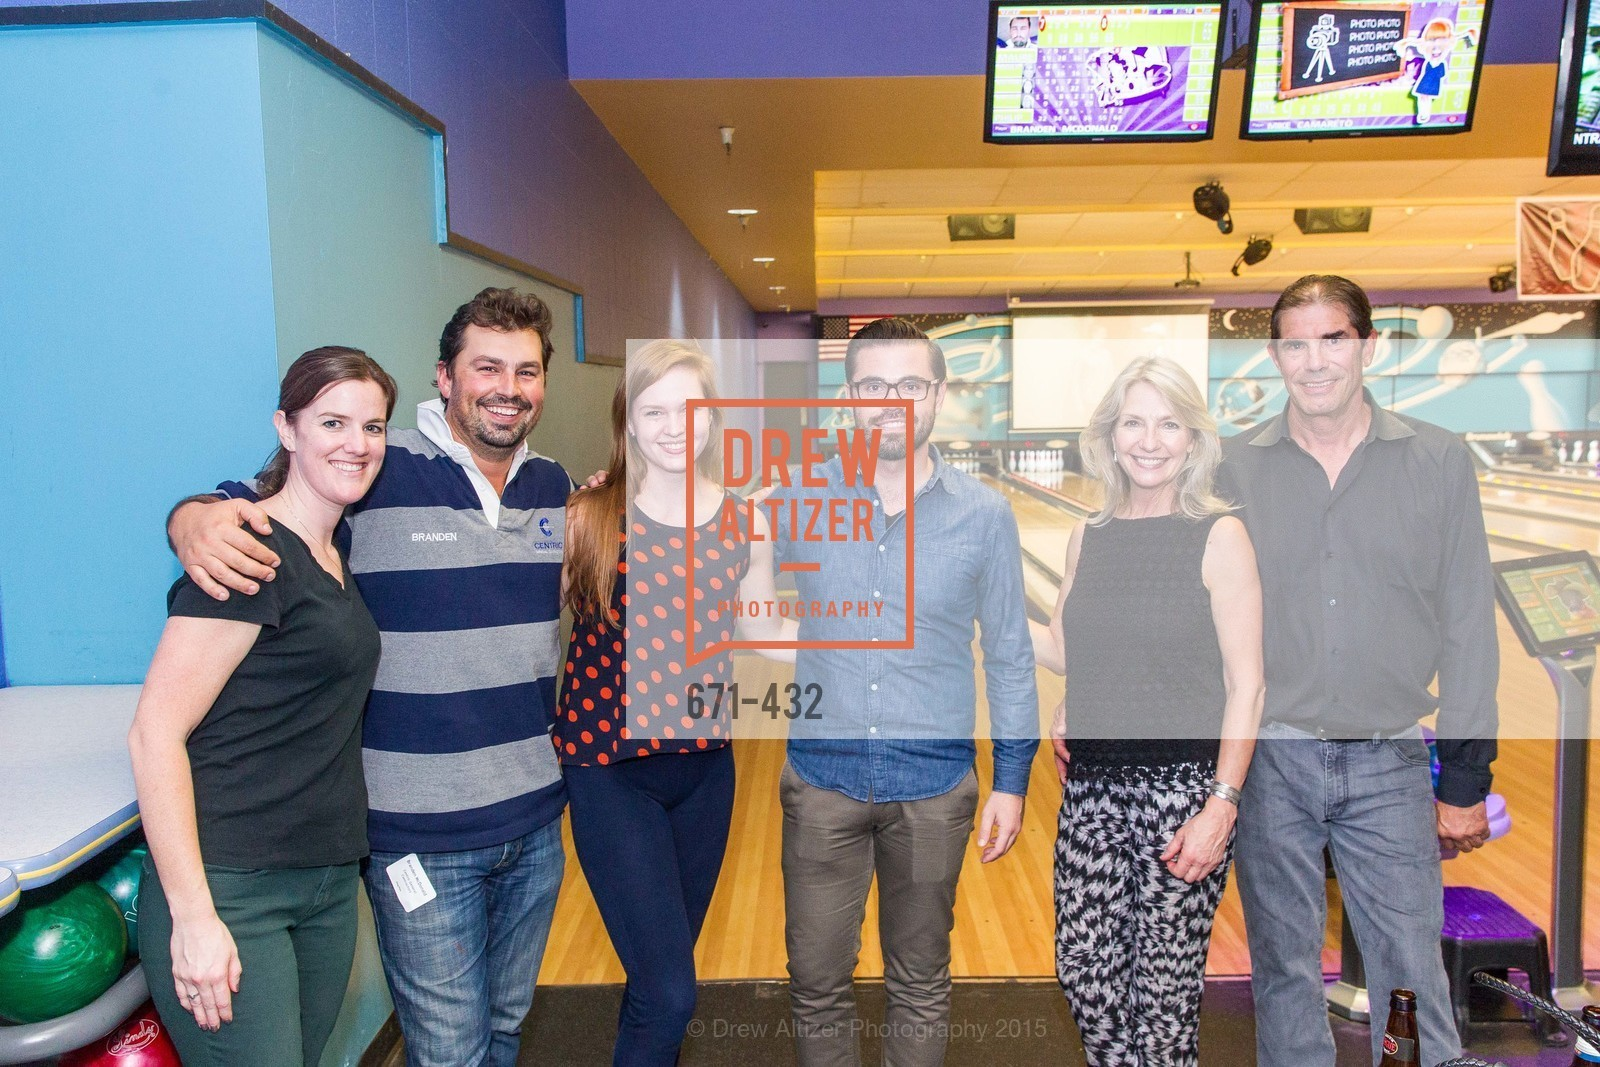 Maureen O'Sullivan, Branden Best, Richael Best, Phillip Bascio, Kathy Geissler Best, John Rosekrans, ScavulloDesign Centric Builders Bowling Party, Presidio Bowl. 93 Moraga Ave, October 29th, 2015,Drew Altizer, Drew Altizer Photography, full-service agency, private events, San Francisco photographer, photographer california